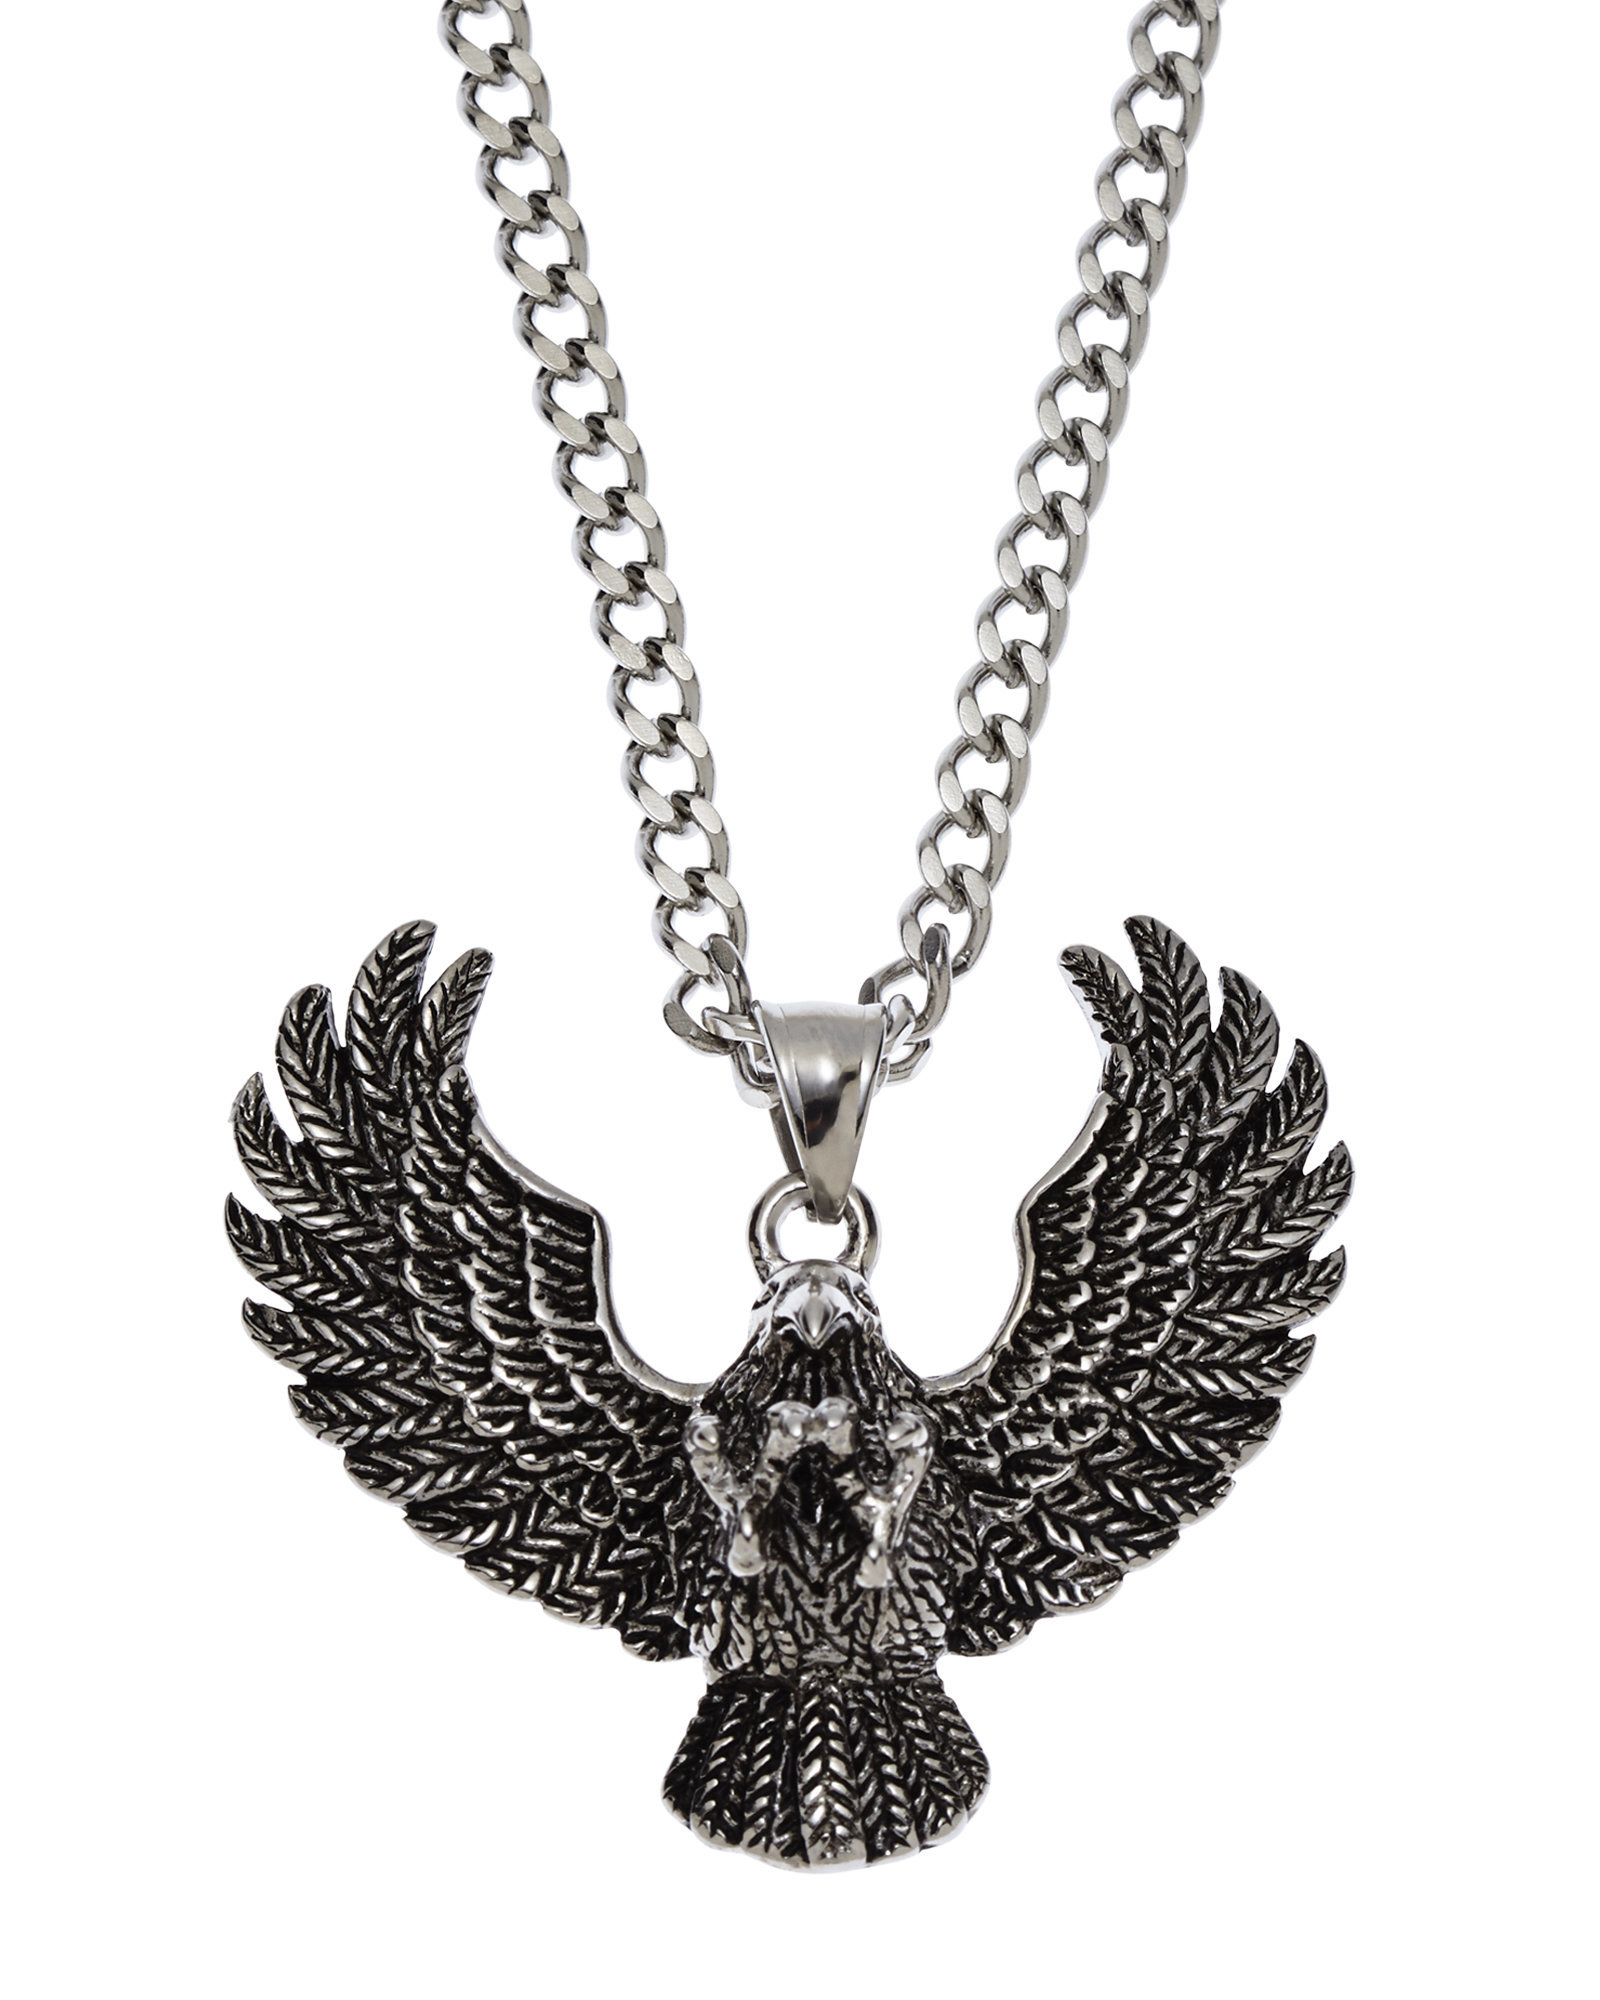 pin eagle the awesome world difference products necklace by albanian coin and pendant jewelry selected